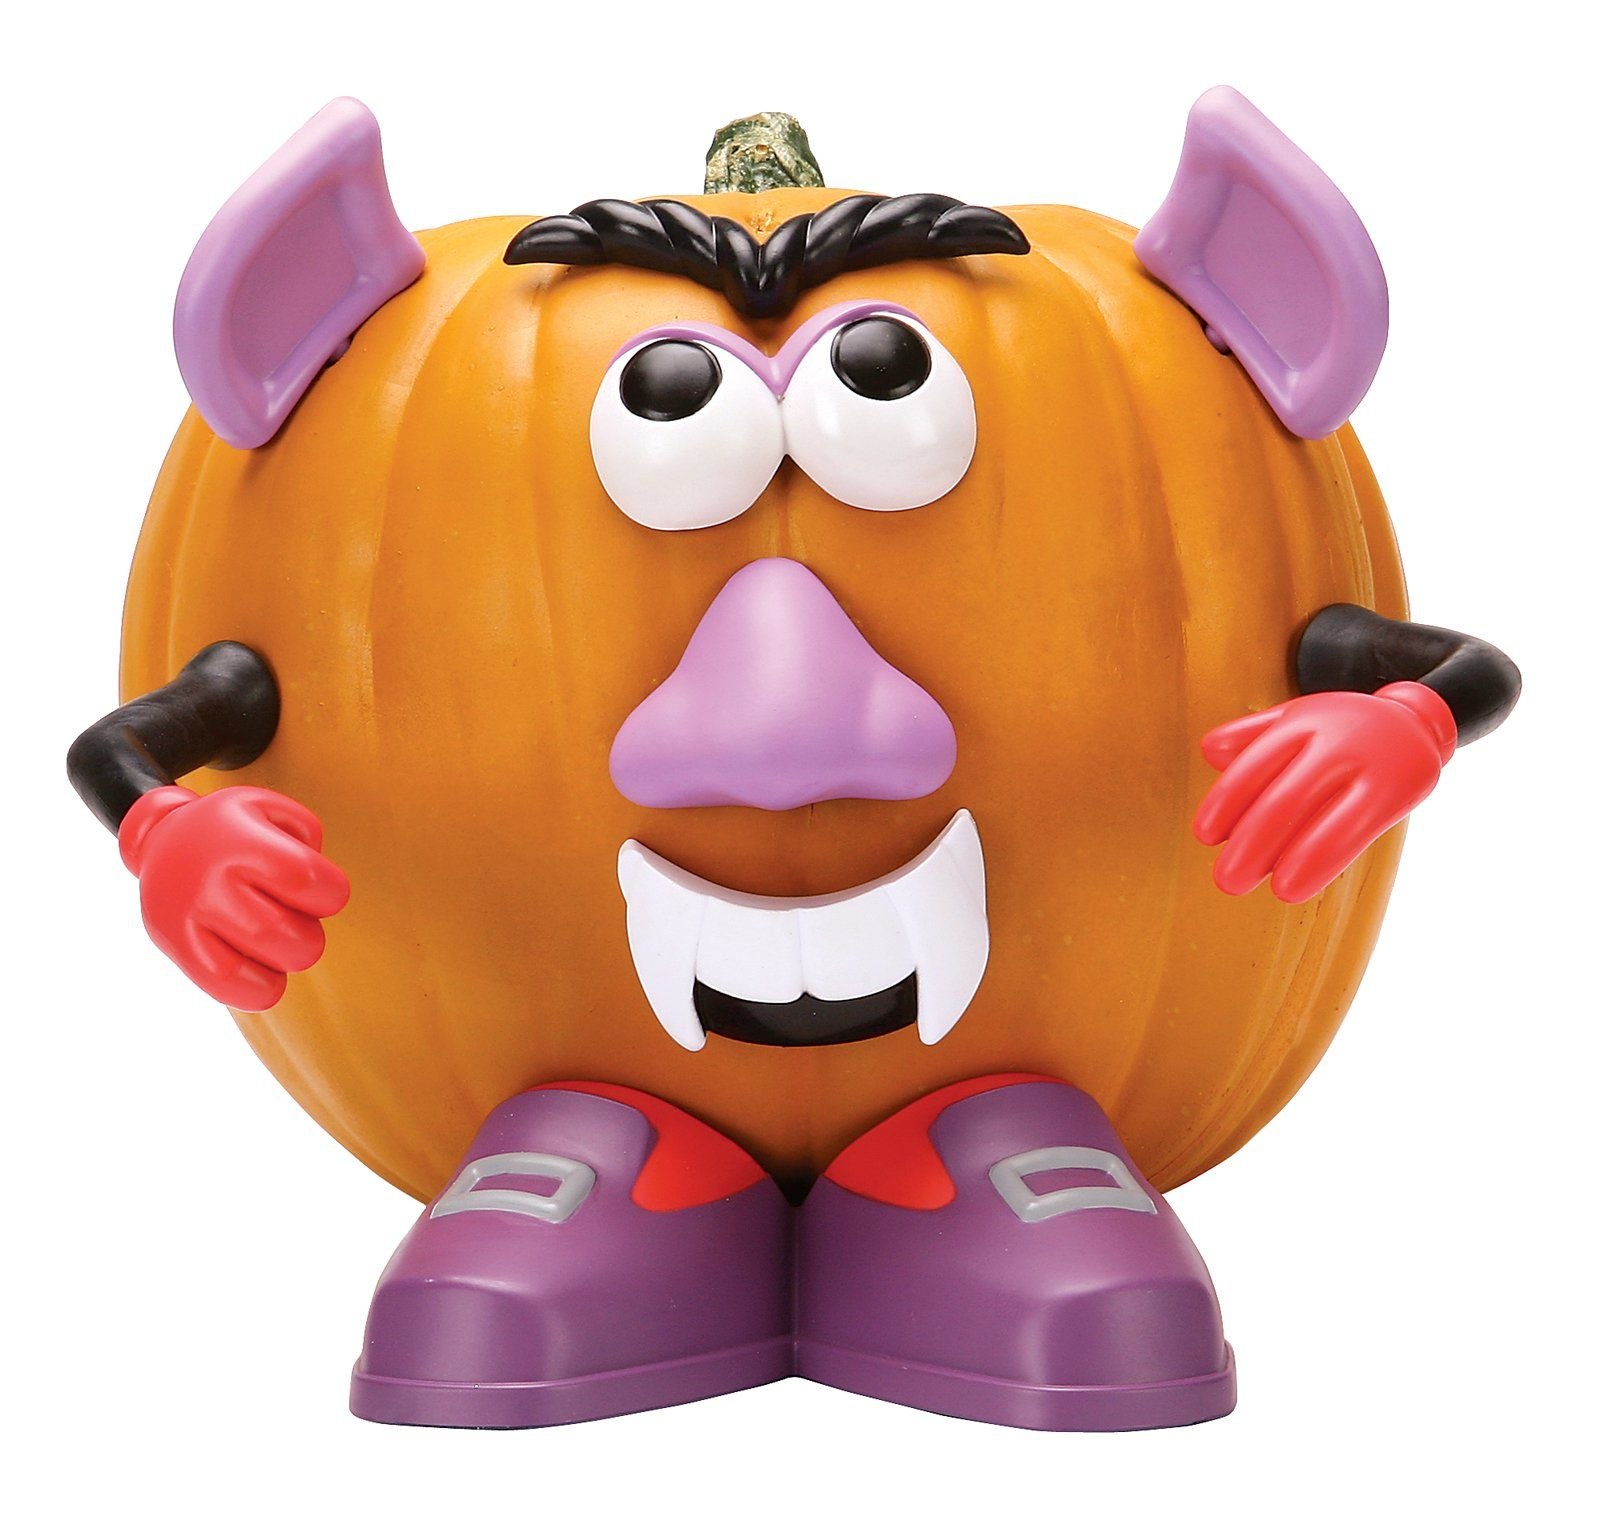 Mr Potato Head Vampire Pumpkin Decorating Kit From Costumes I Want This Toy Lol